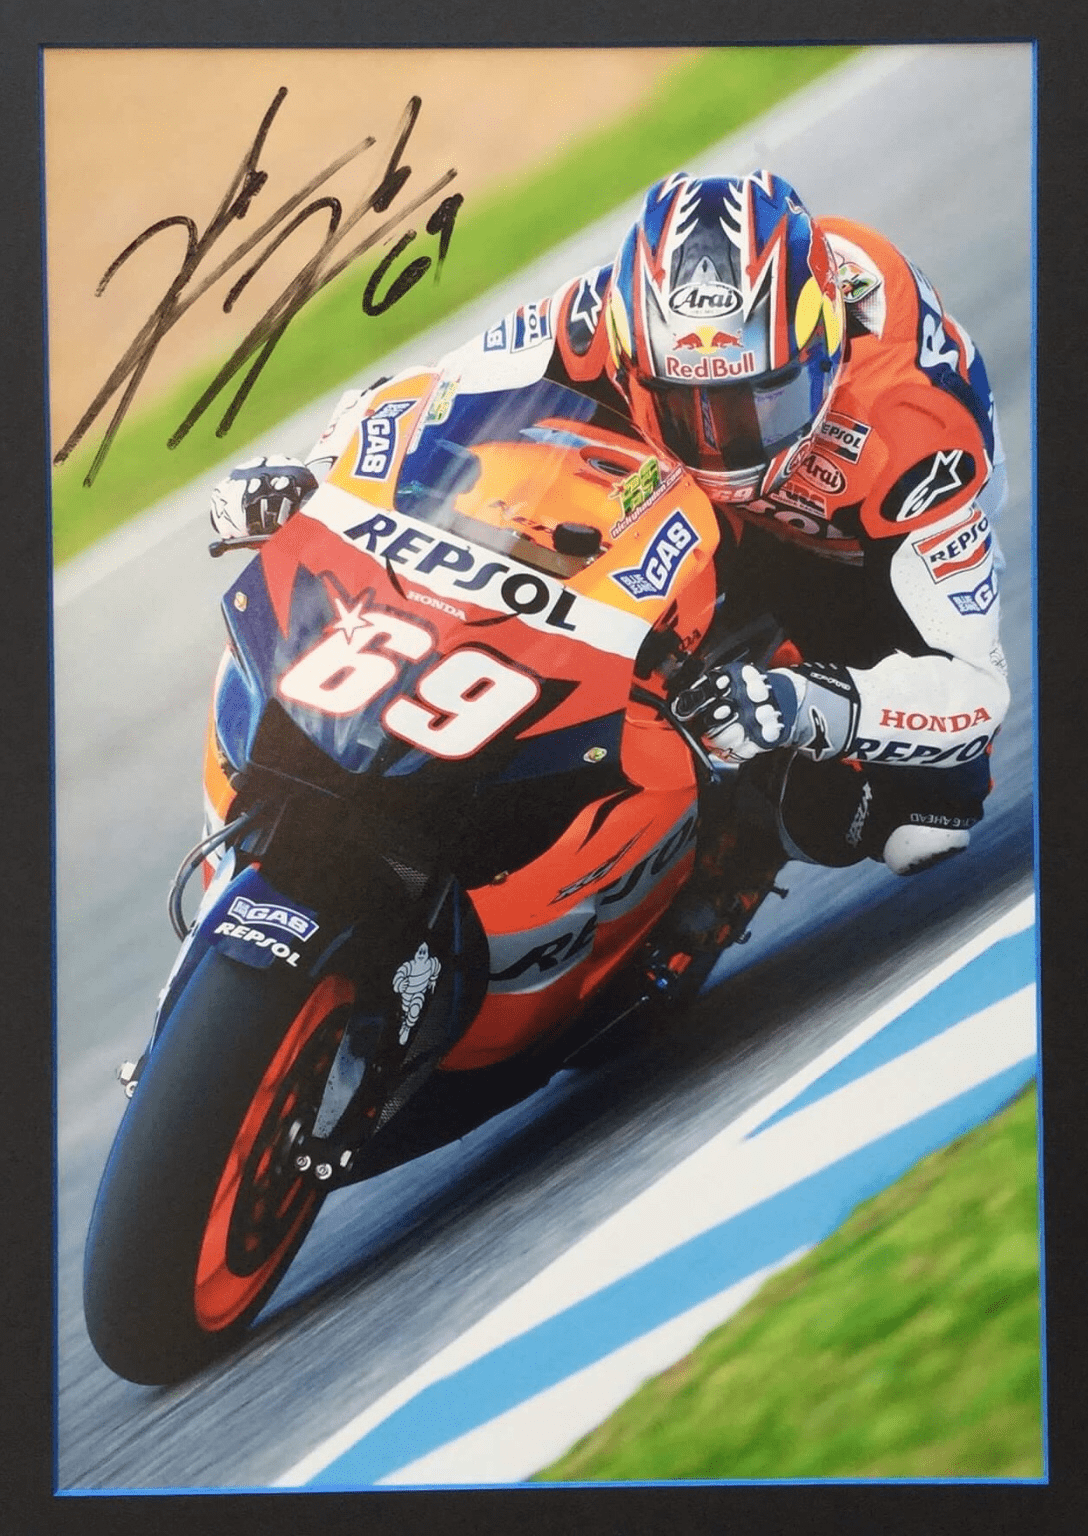 Big Center Nicky Hayden Signed Large Photo Br This Large Display Of The 2006 Motogp Champion